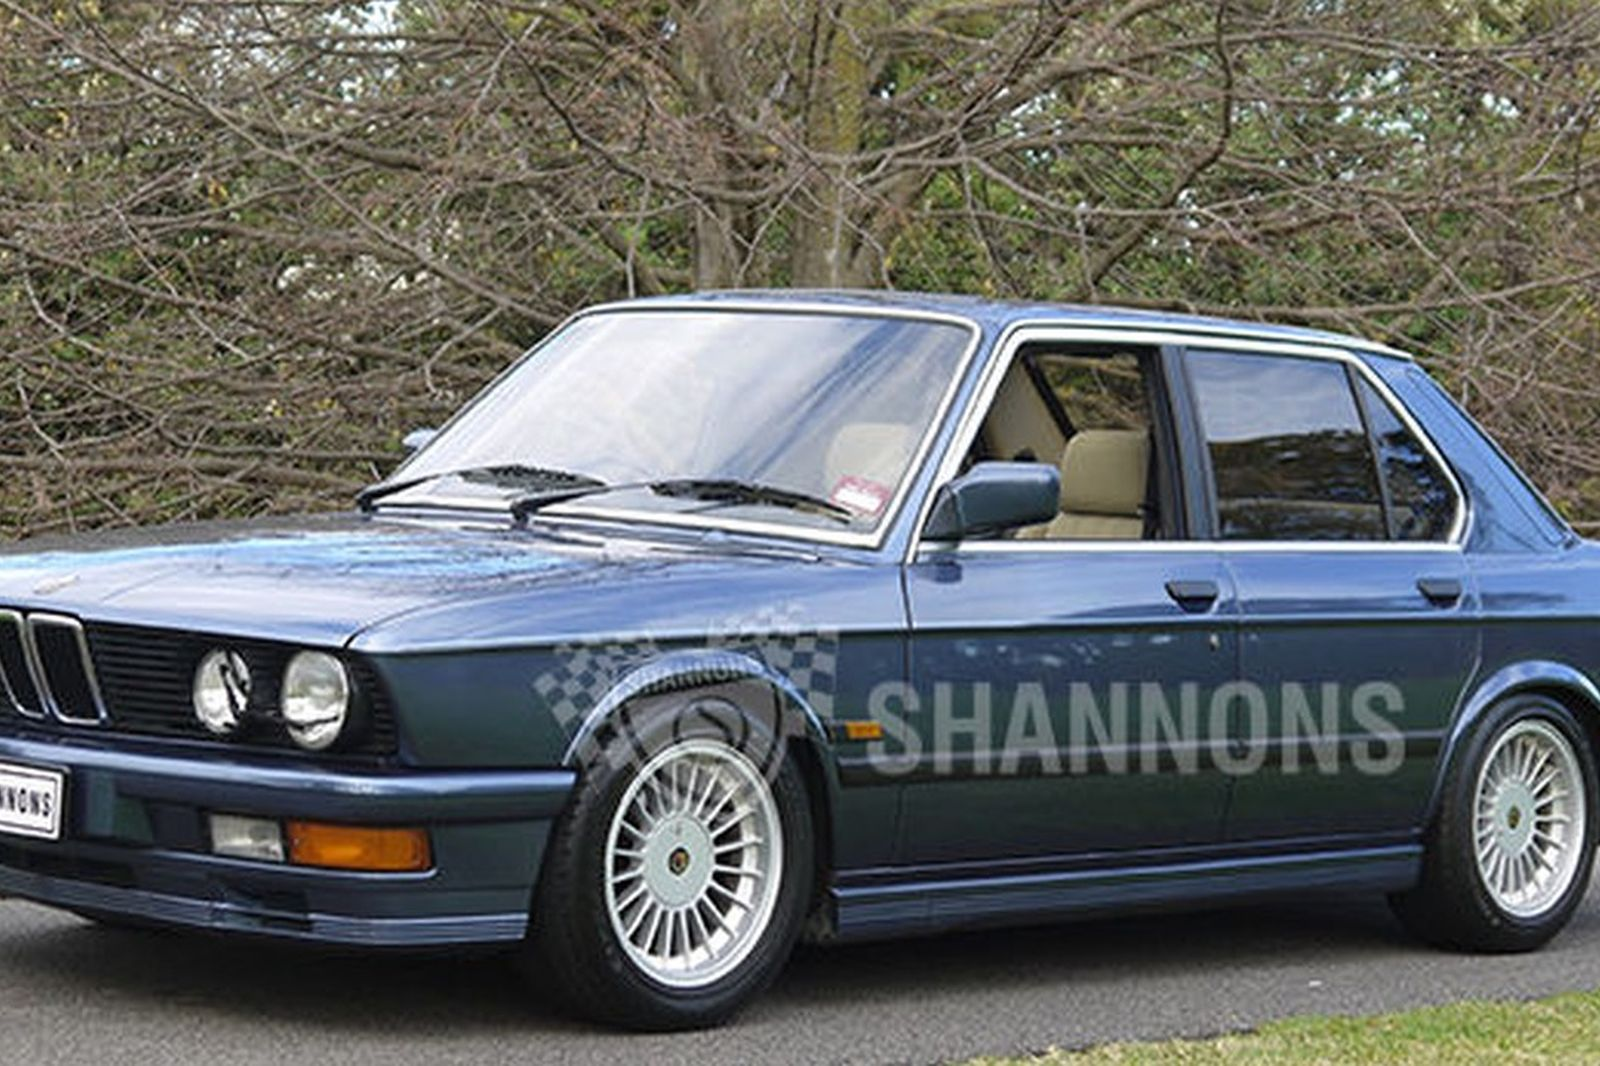 sold bmw 535i alpina b10 3 5 sedan auctions lot 29 shannons. Black Bedroom Furniture Sets. Home Design Ideas